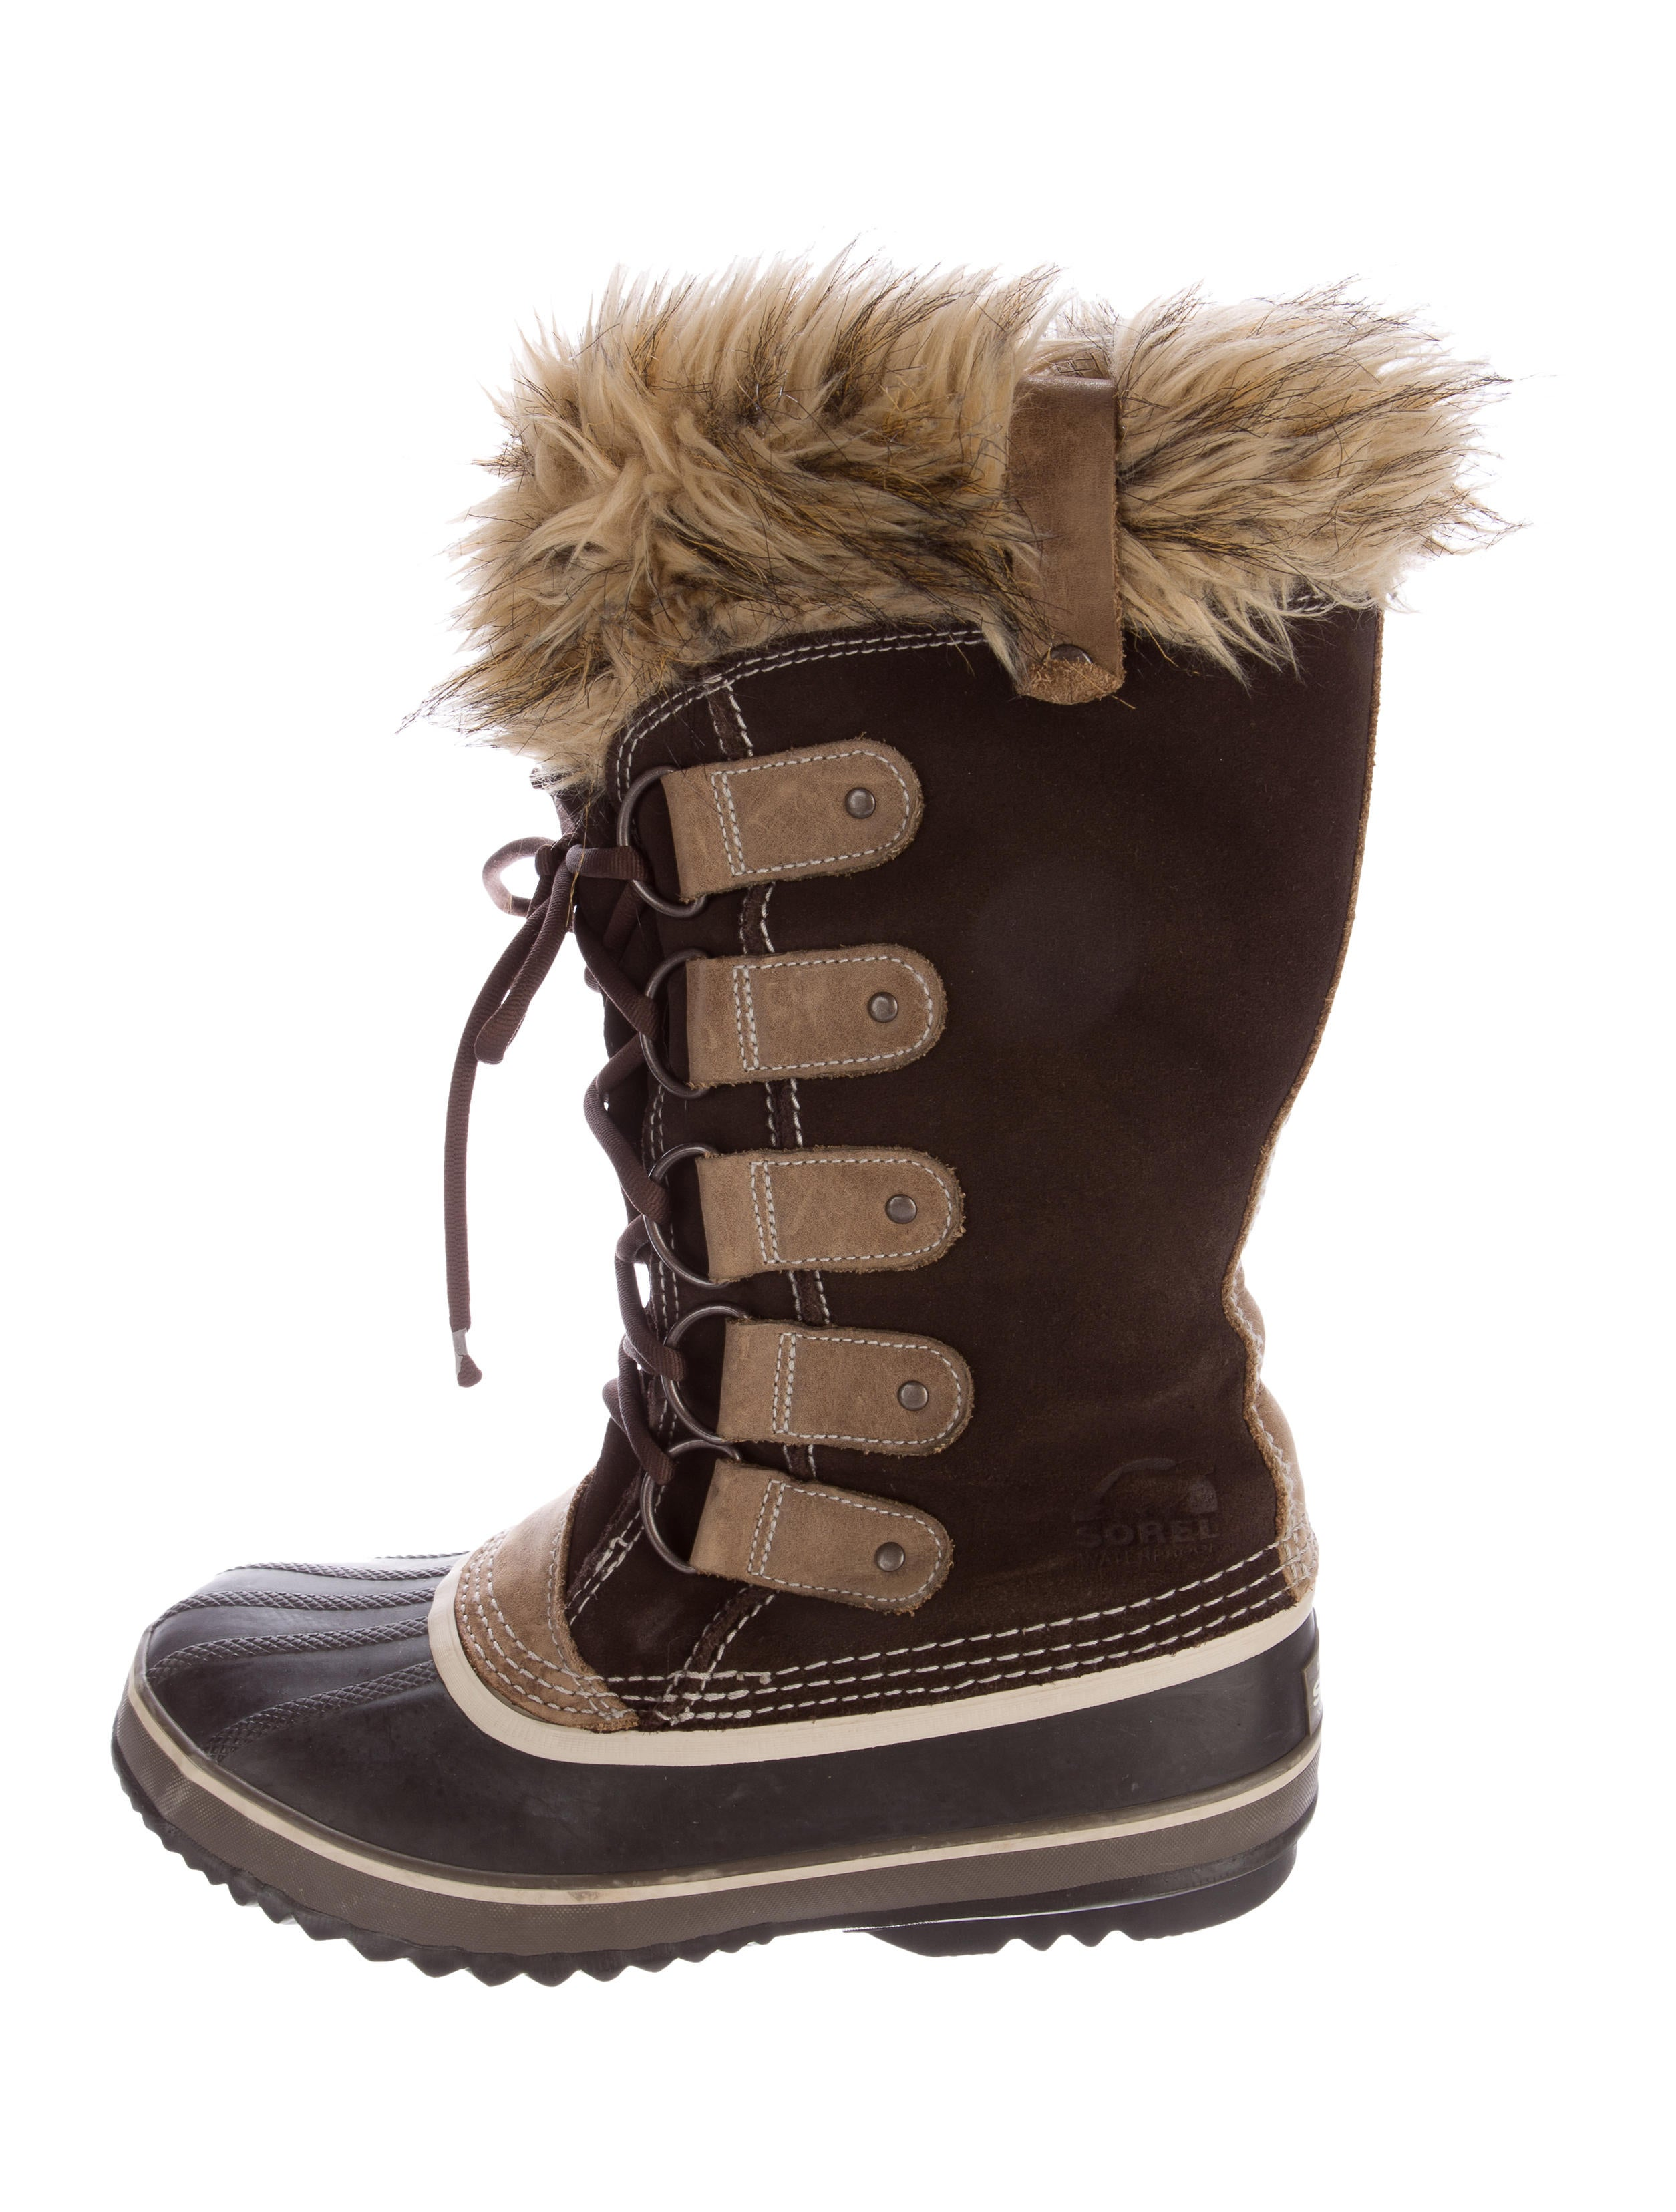 sorel suede mid calf snow boots shoes wsorl20130 the